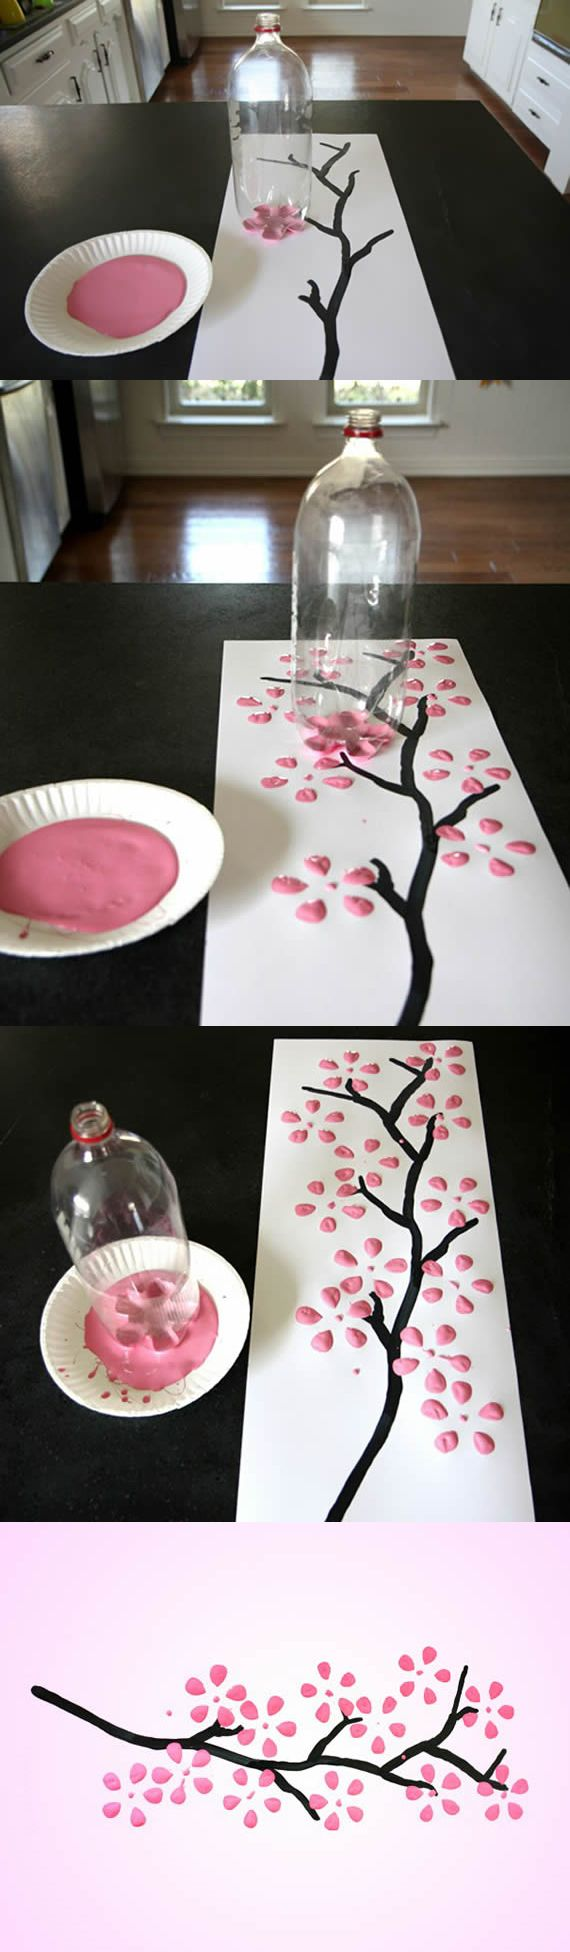 Extremely easy and pretty flower painting to make using the bottom of a bottle. Get everything you need to do this project at Walgreens.com.